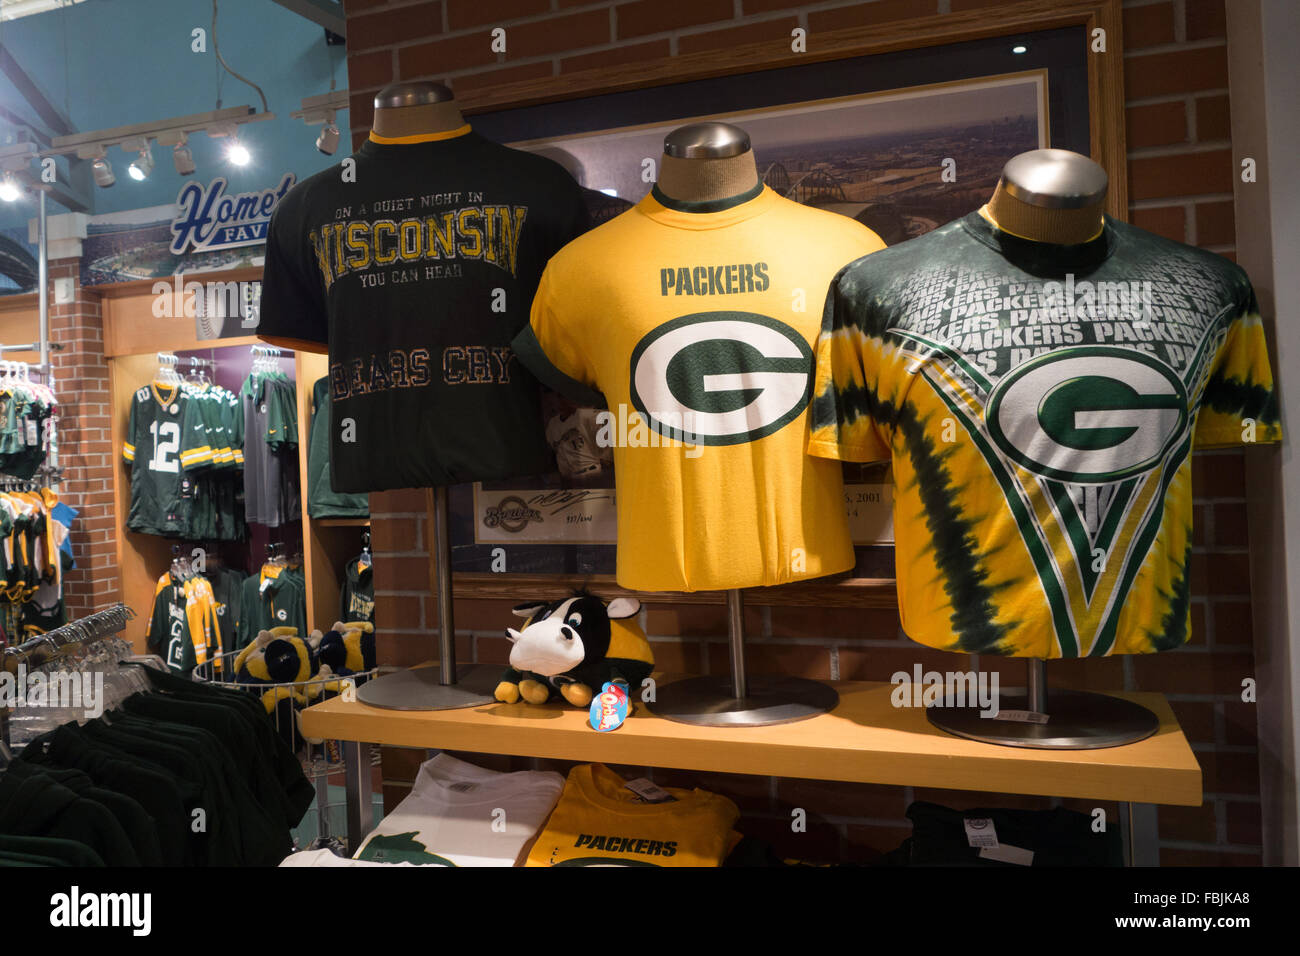 green bay packer gift shop - Stock Image